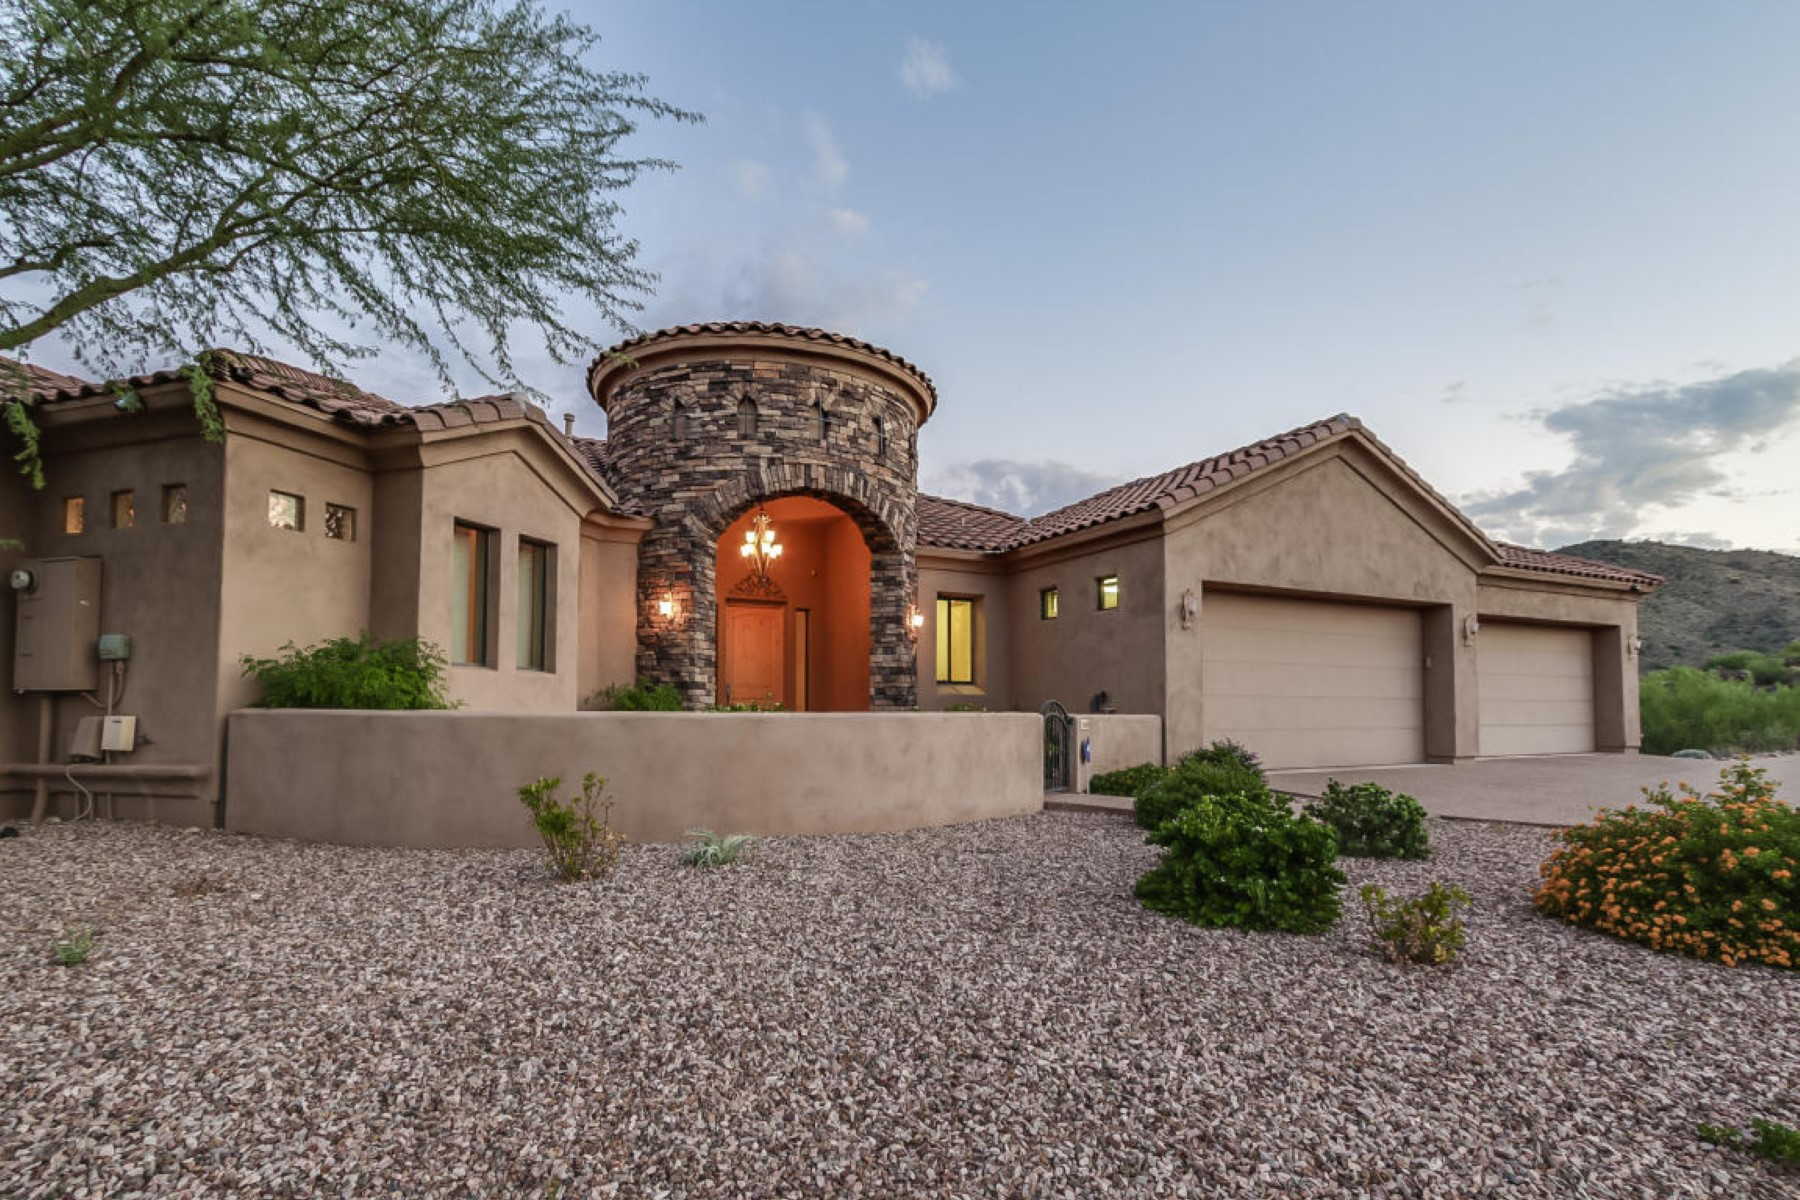 Maison unifamiliale pour l Vente à Custom home on a premier street of Sunridge Canyon 15405 E Sundown Drive Fountain Hills, Arizona, 85268 États-Unis